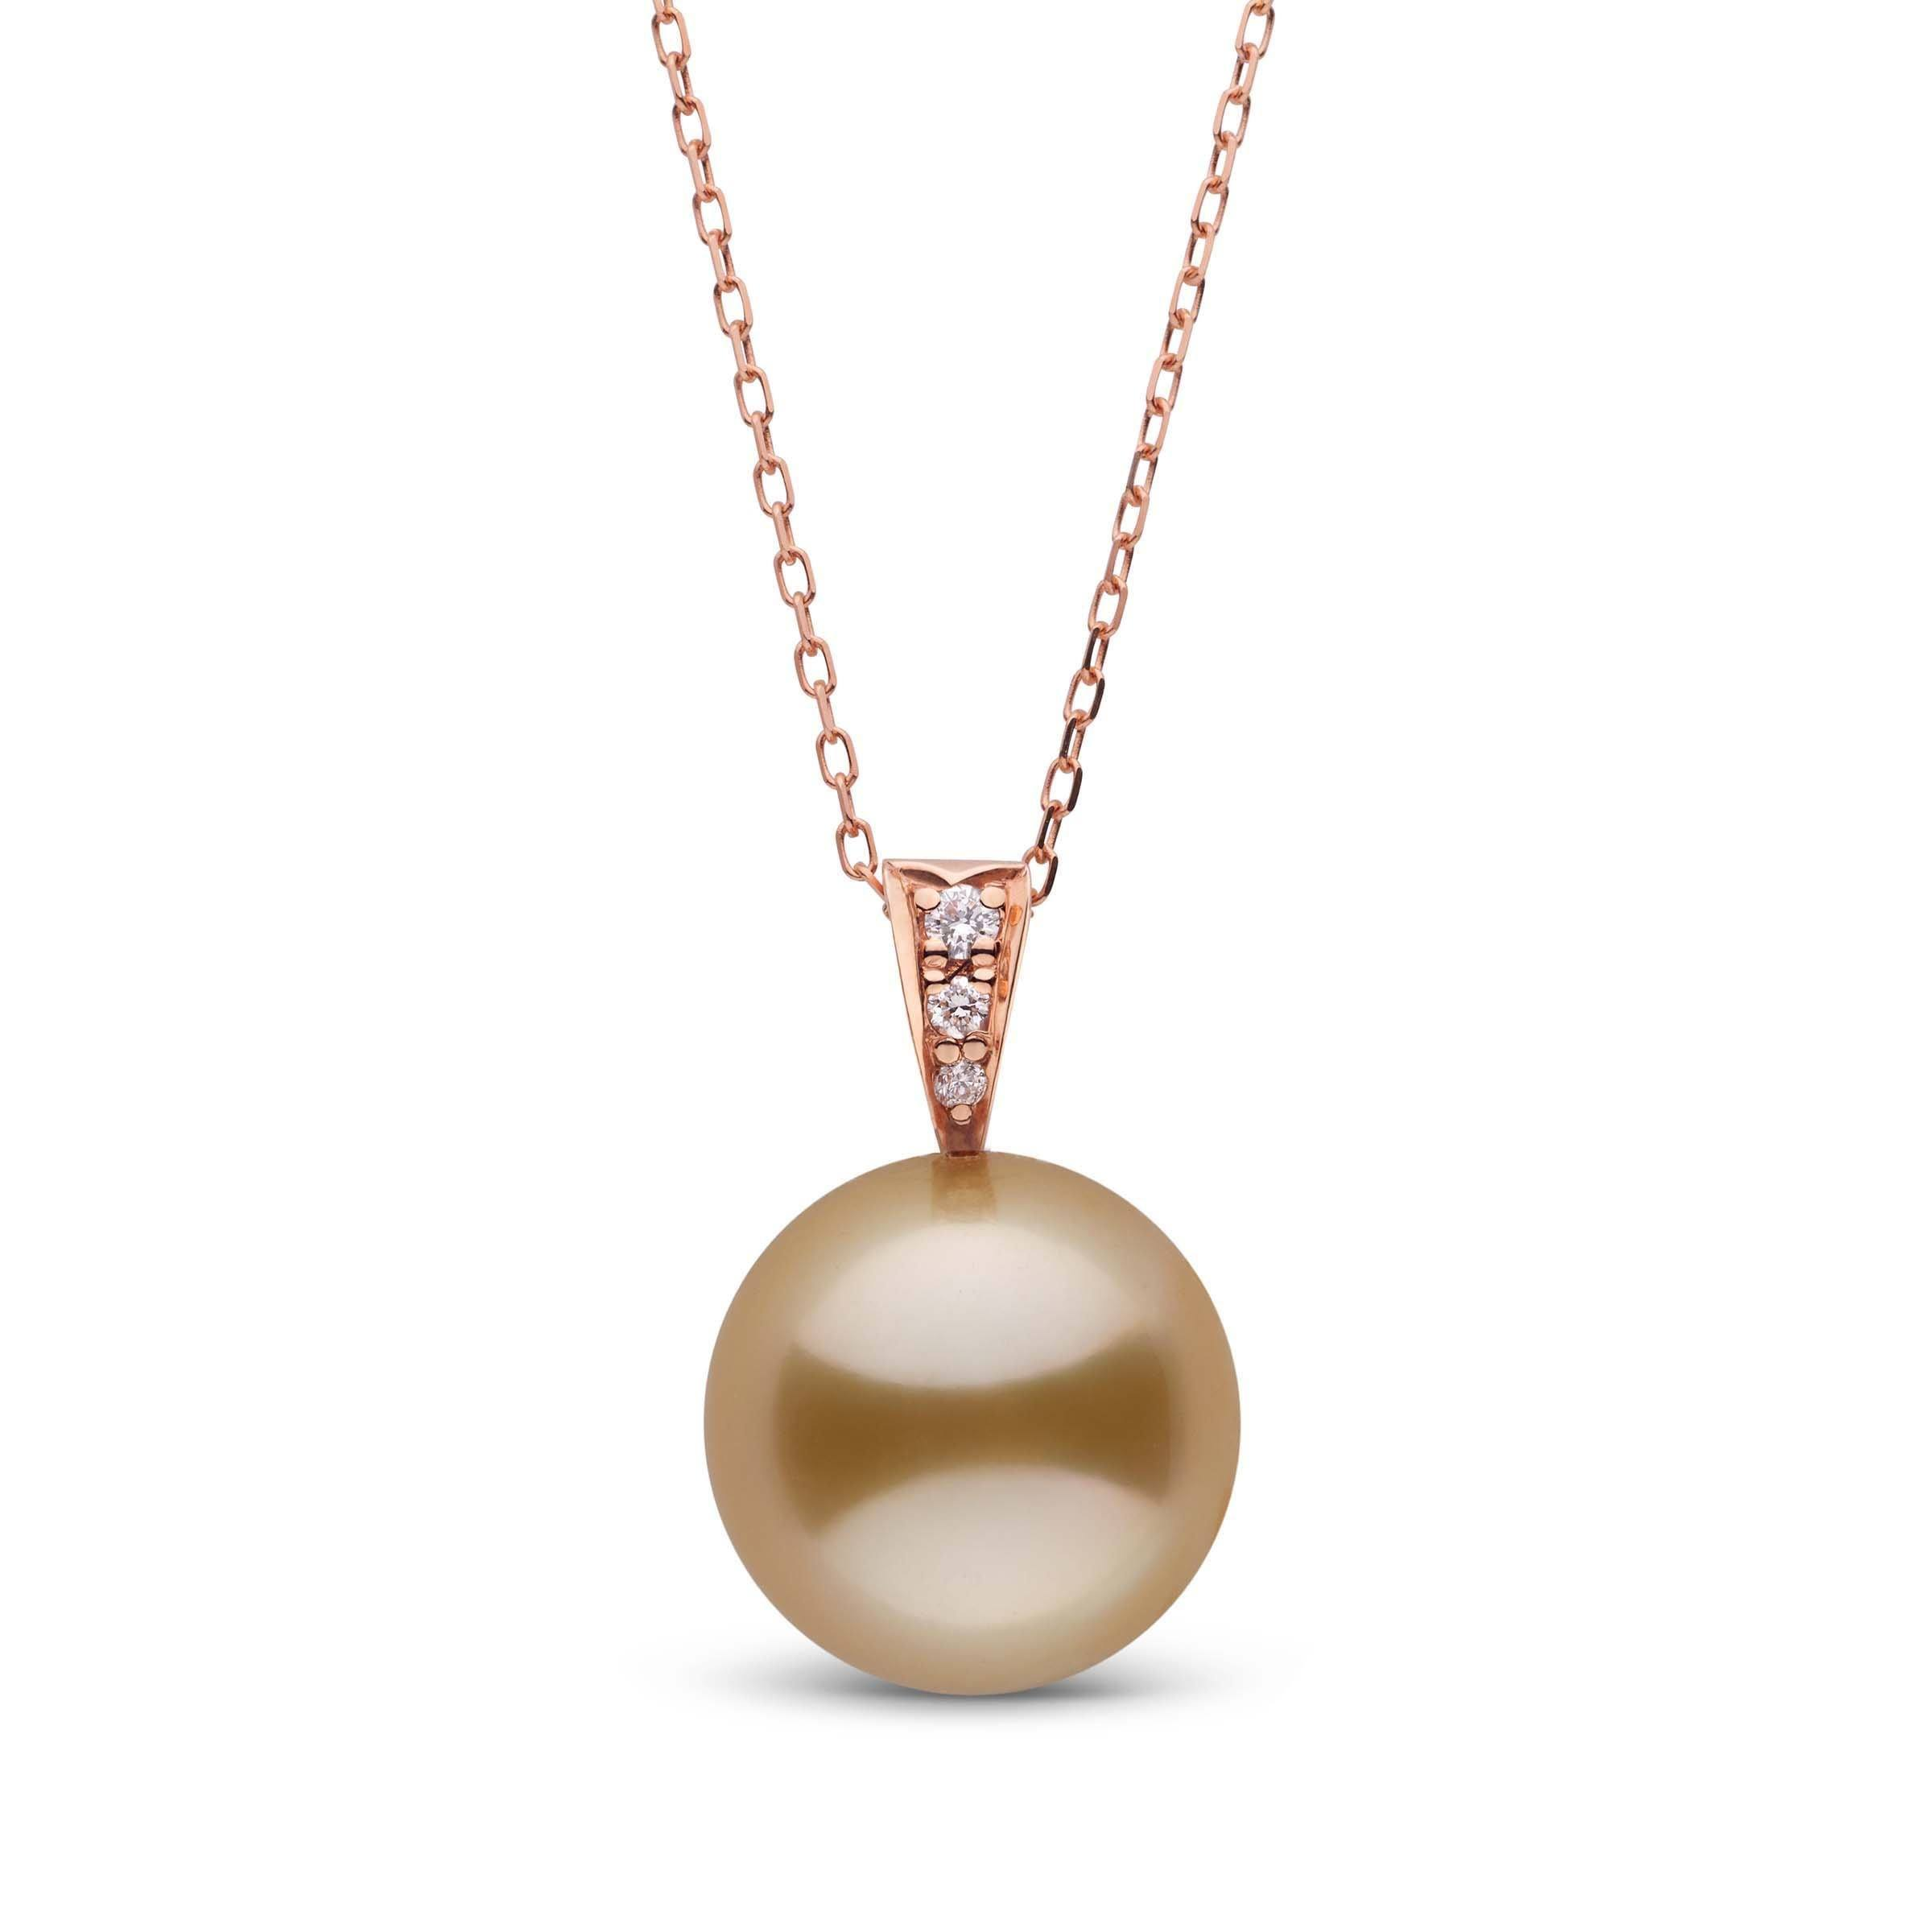 Desire Collection Golden 12.0-13.0 mm South Sea Pearl and Diamond Pendant